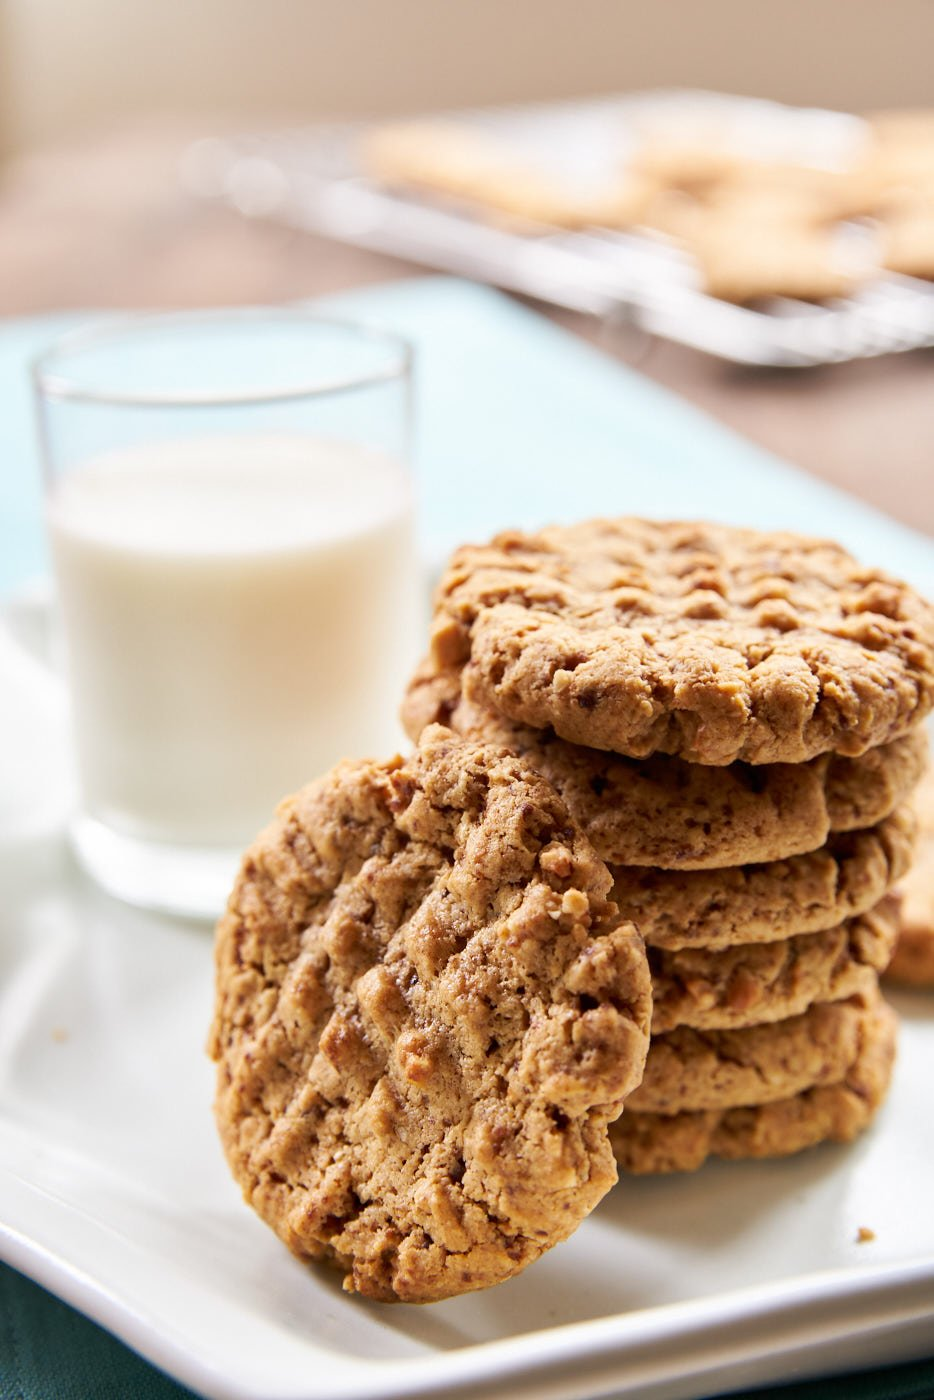 These delicious plant-based peanut butter cookies are chewy on the inside and crisp around the edges.